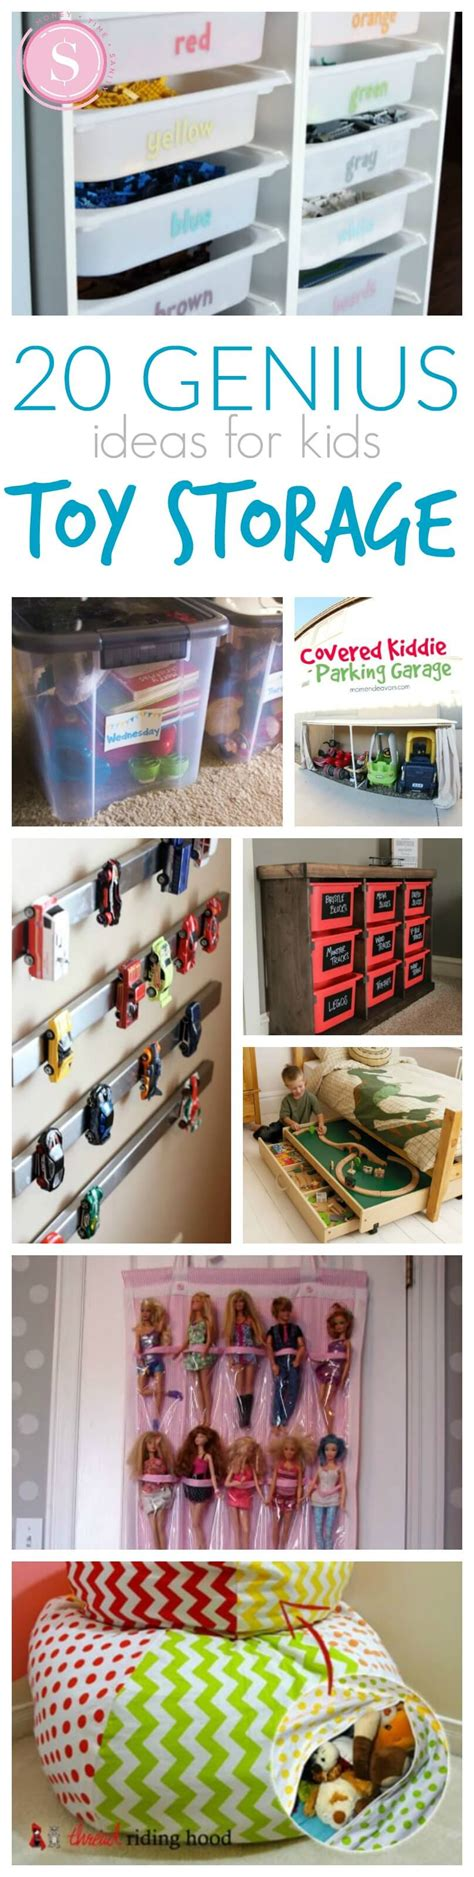 cleaning and organizing tips for bedroom 20 genius ideas for organizing your kid s rooms great